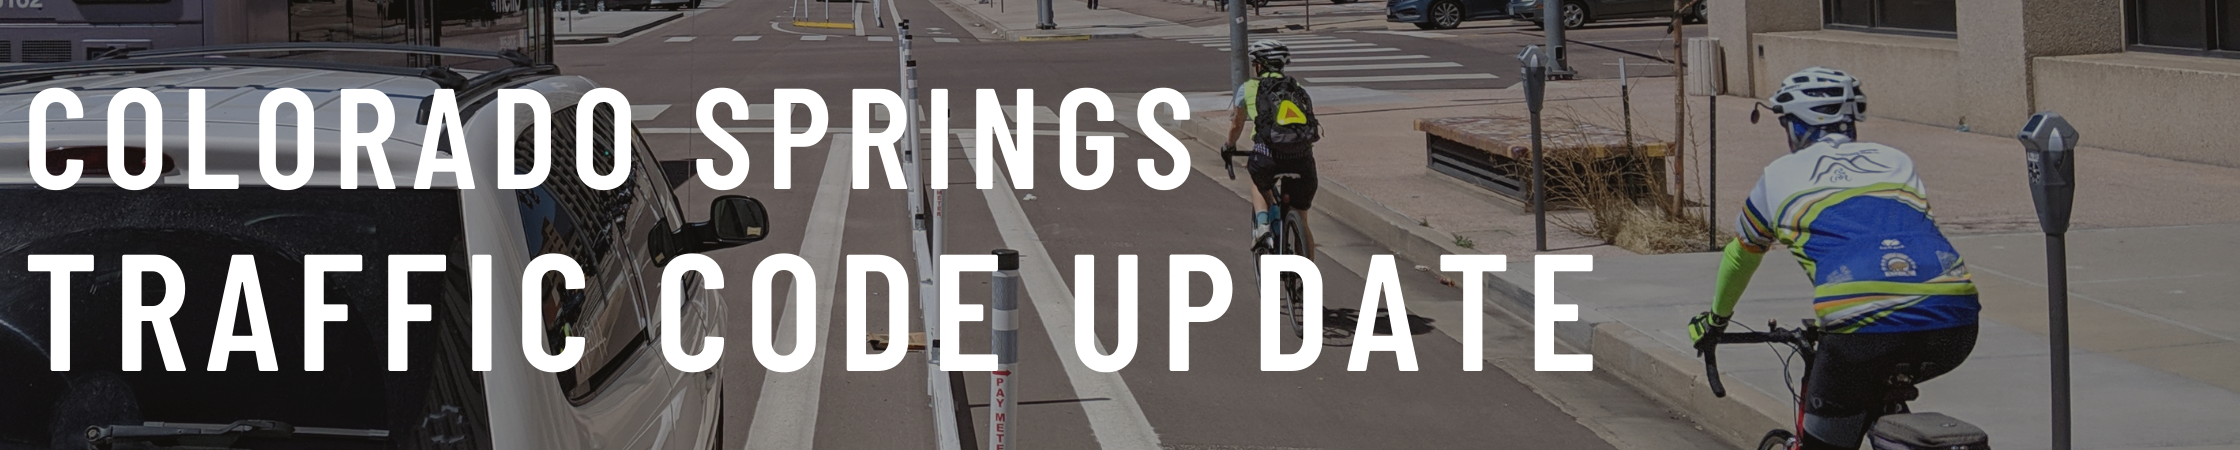 Colorado Springs Traffic Code Update